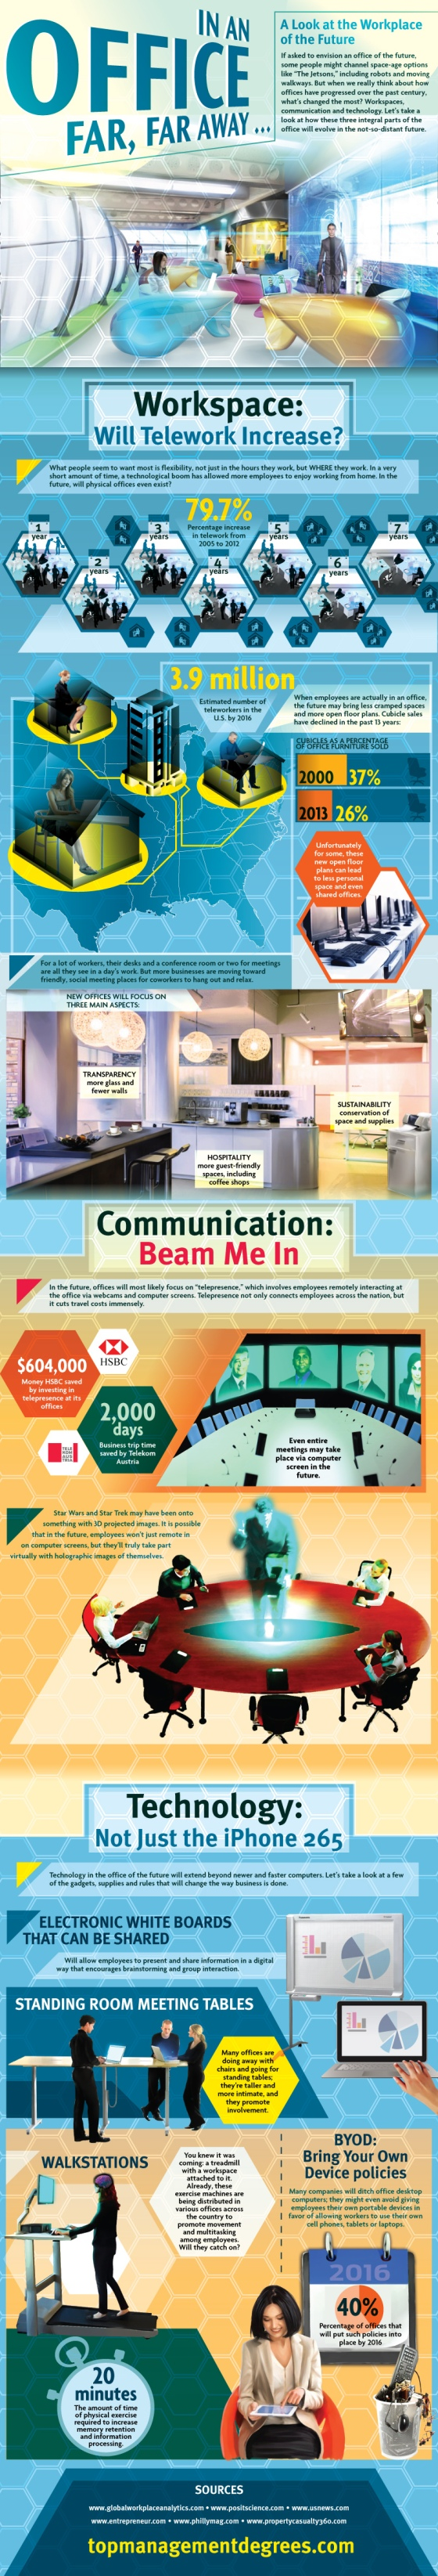 Infographic : Office of the Future